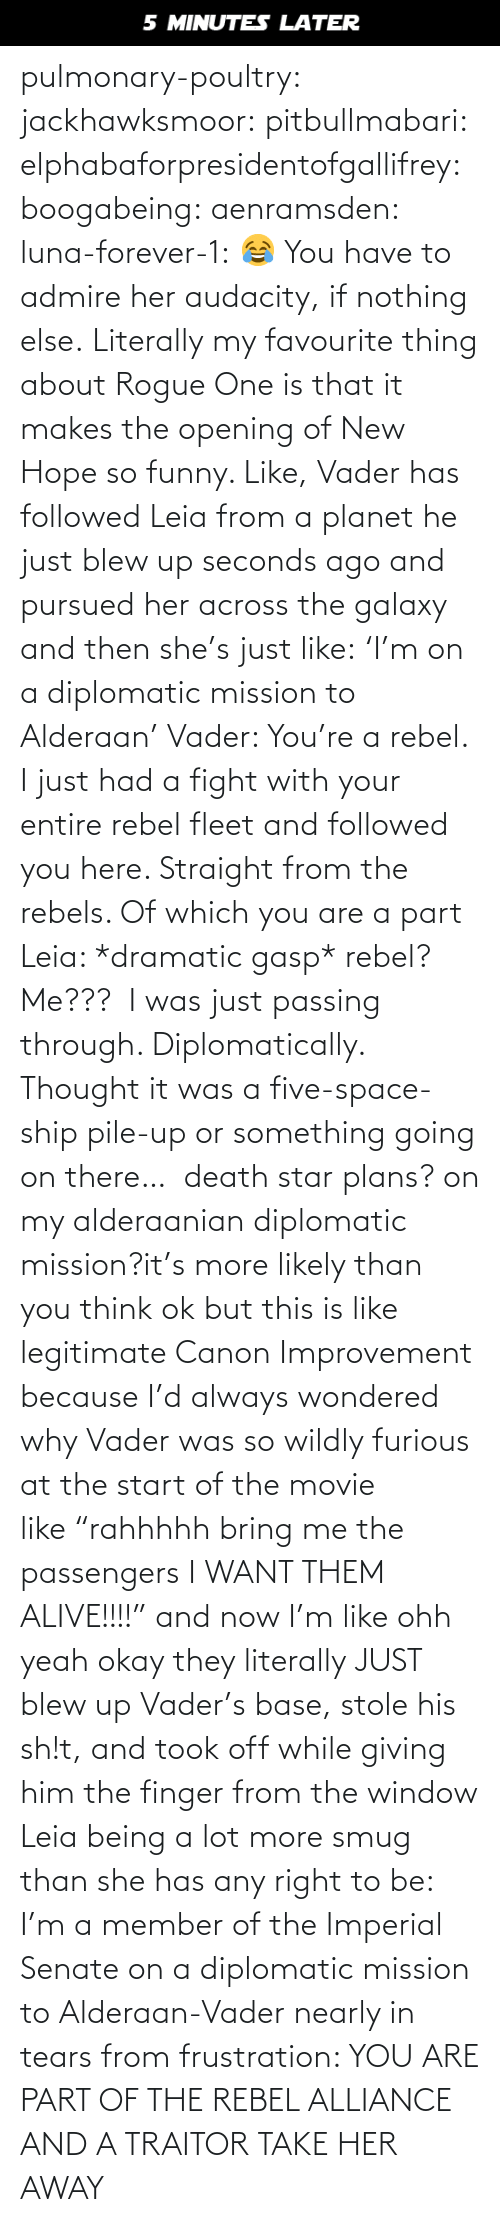 "Plans: 5 MINUTES LATER pulmonary-poultry:  jackhawksmoor:  pitbullmabari:  elphabaforpresidentofgallifrey:  boogabeing:  aenramsden:  luna-forever-1: 😂 You have to admire her audacity, if nothing else.  Literally my favourite thing about Rogue One is that it makes the opening of New Hope so funny. Like, Vader has followed Leia from a planet he just blew up seconds ago and pursued her across the galaxy and then she's just like: 'I'm on a diplomatic mission to Alderaan' Vader: You're a rebel. I just had a fight with your entire rebel fleet and followed you here. Straight from the rebels. Of which you are a part Leia: *dramatic gasp* rebel? Me???  I was just passing through. Diplomatically. Thought it was a five-space-ship pile-up or something going on there…   death star plans? on my alderaanian diplomatic mission?it's more likely than you think   ok but this is like legitimate Canon Improvement because I'd always wondered why Vader was so wildly furious at the start of the movie like ""rahhhhh bring me the passengers I WANT THEM ALIVE!!!!"" and now I'm like ohh yeah okay they literally JUST blew up Vader's base, stole his sh!t, and took off while giving him the finger from the window    Leia being a lot more smug than she has any right to be: I'm a member of the Imperial Senate on a diplomatic mission to Alderaan-Vader nearly in tears from frustration: YOU ARE PART OF THE REBEL ALLIANCE AND A TRAITOR TAKE HER AWAY"